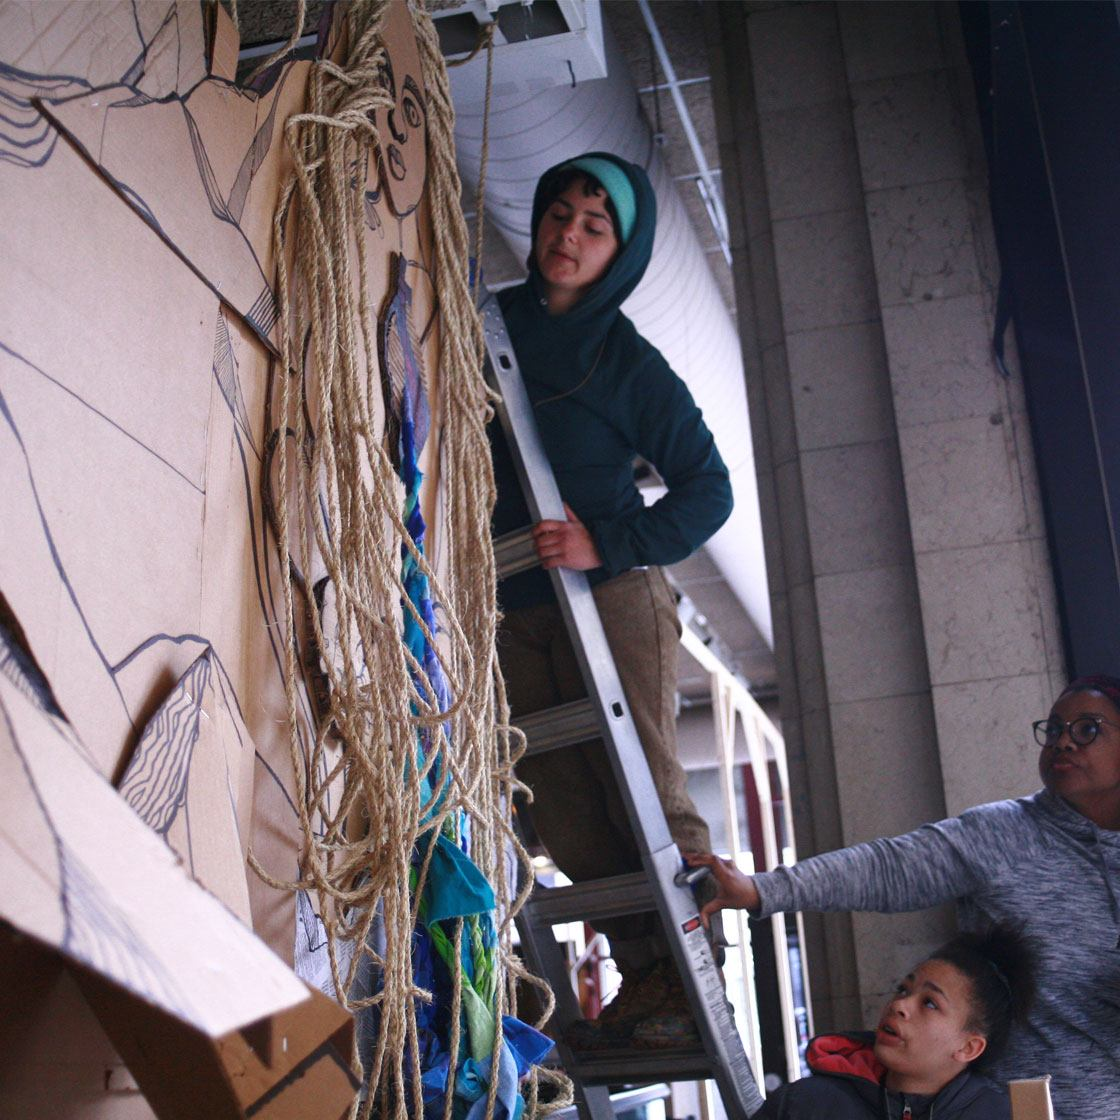 Several people working together to hang an art installation